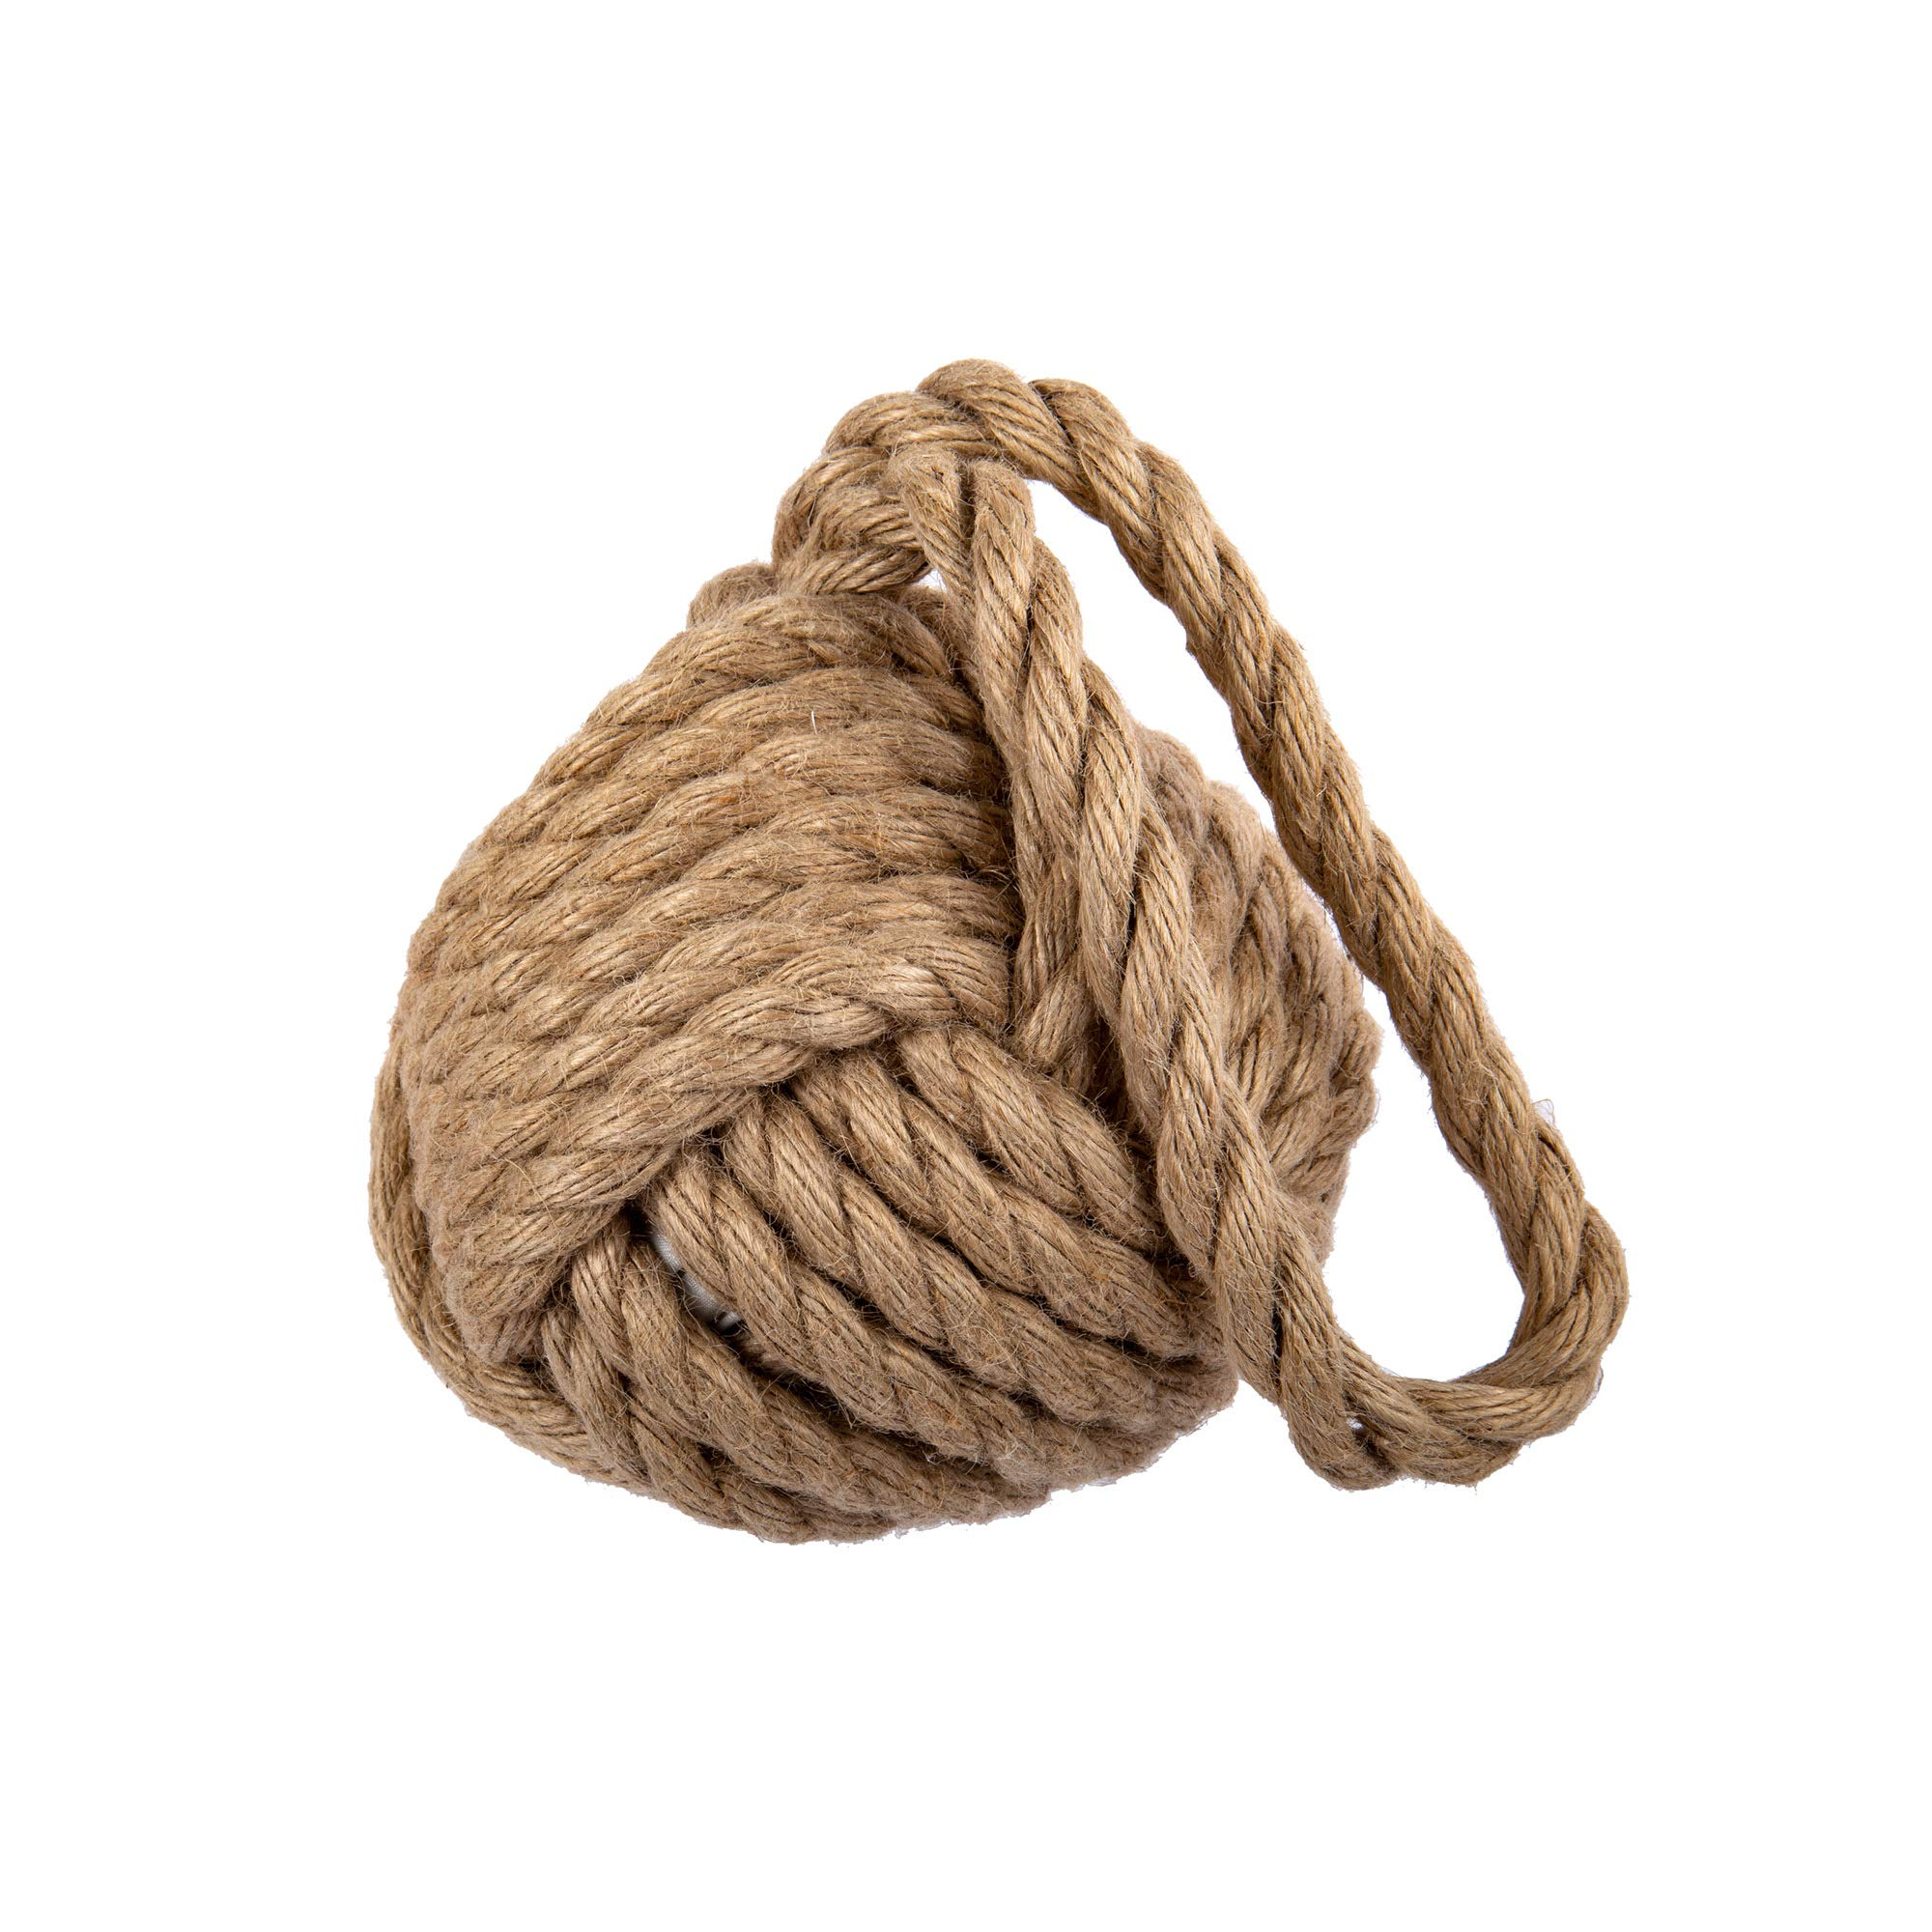 CTG Small Monkey Knot Rope Door Stopper, 6.25 x 6.25 inches, Natural, Beige